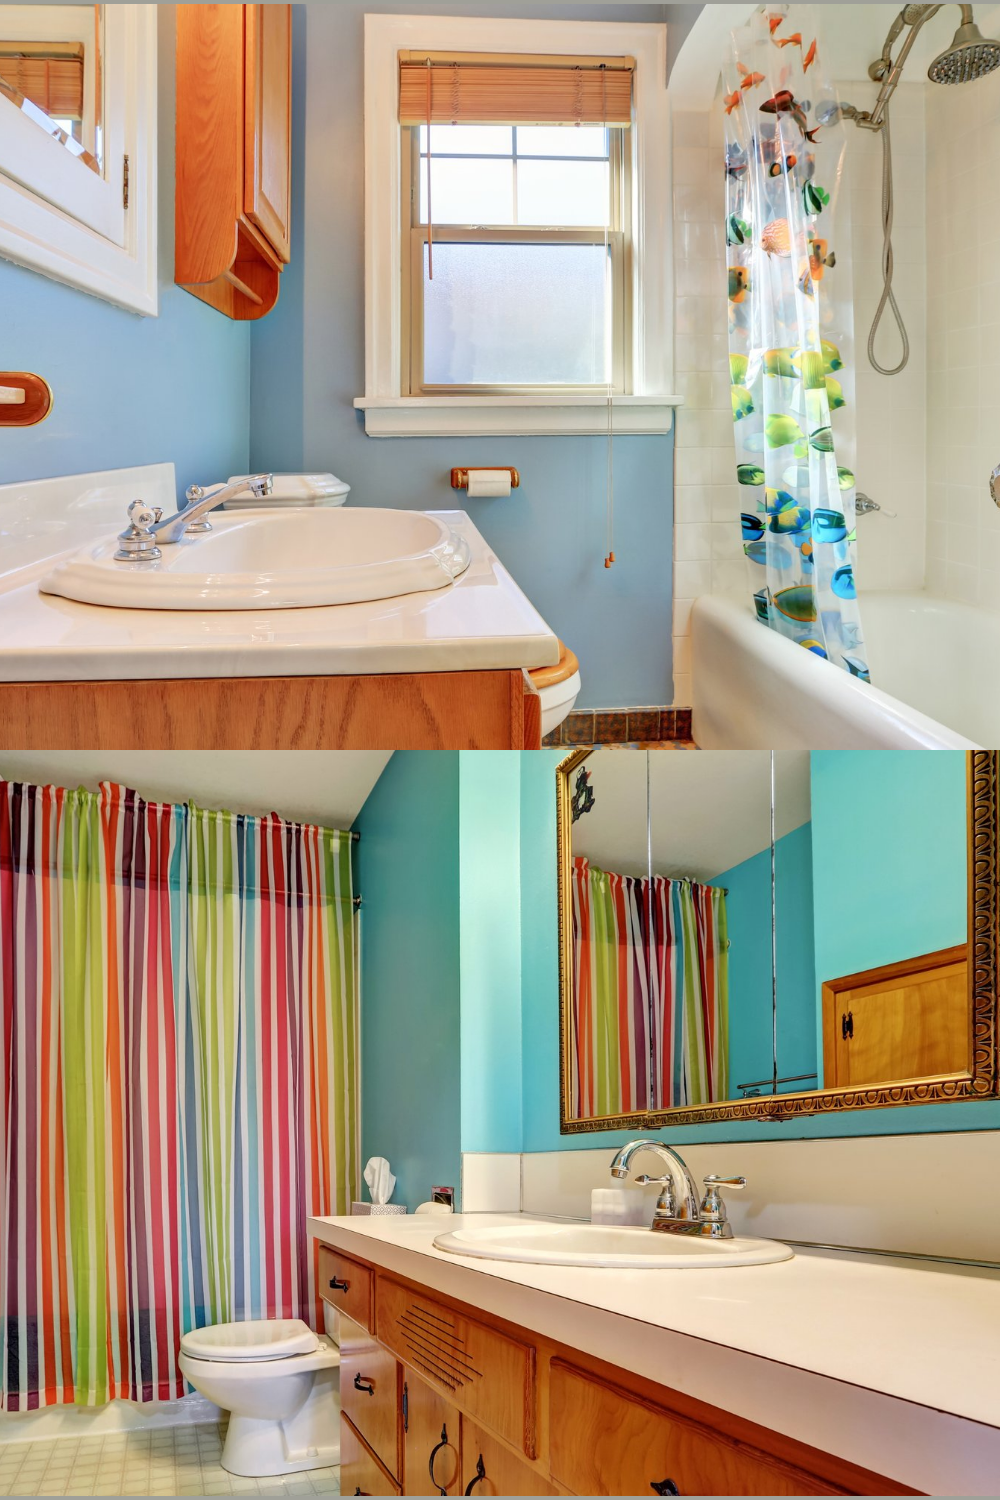 25 Beautiful Bathroom Paint Colors For Your Bathroom In 2020 Bathroom Paint Colors Best Bathroom Paint Colors Painting Bathroom